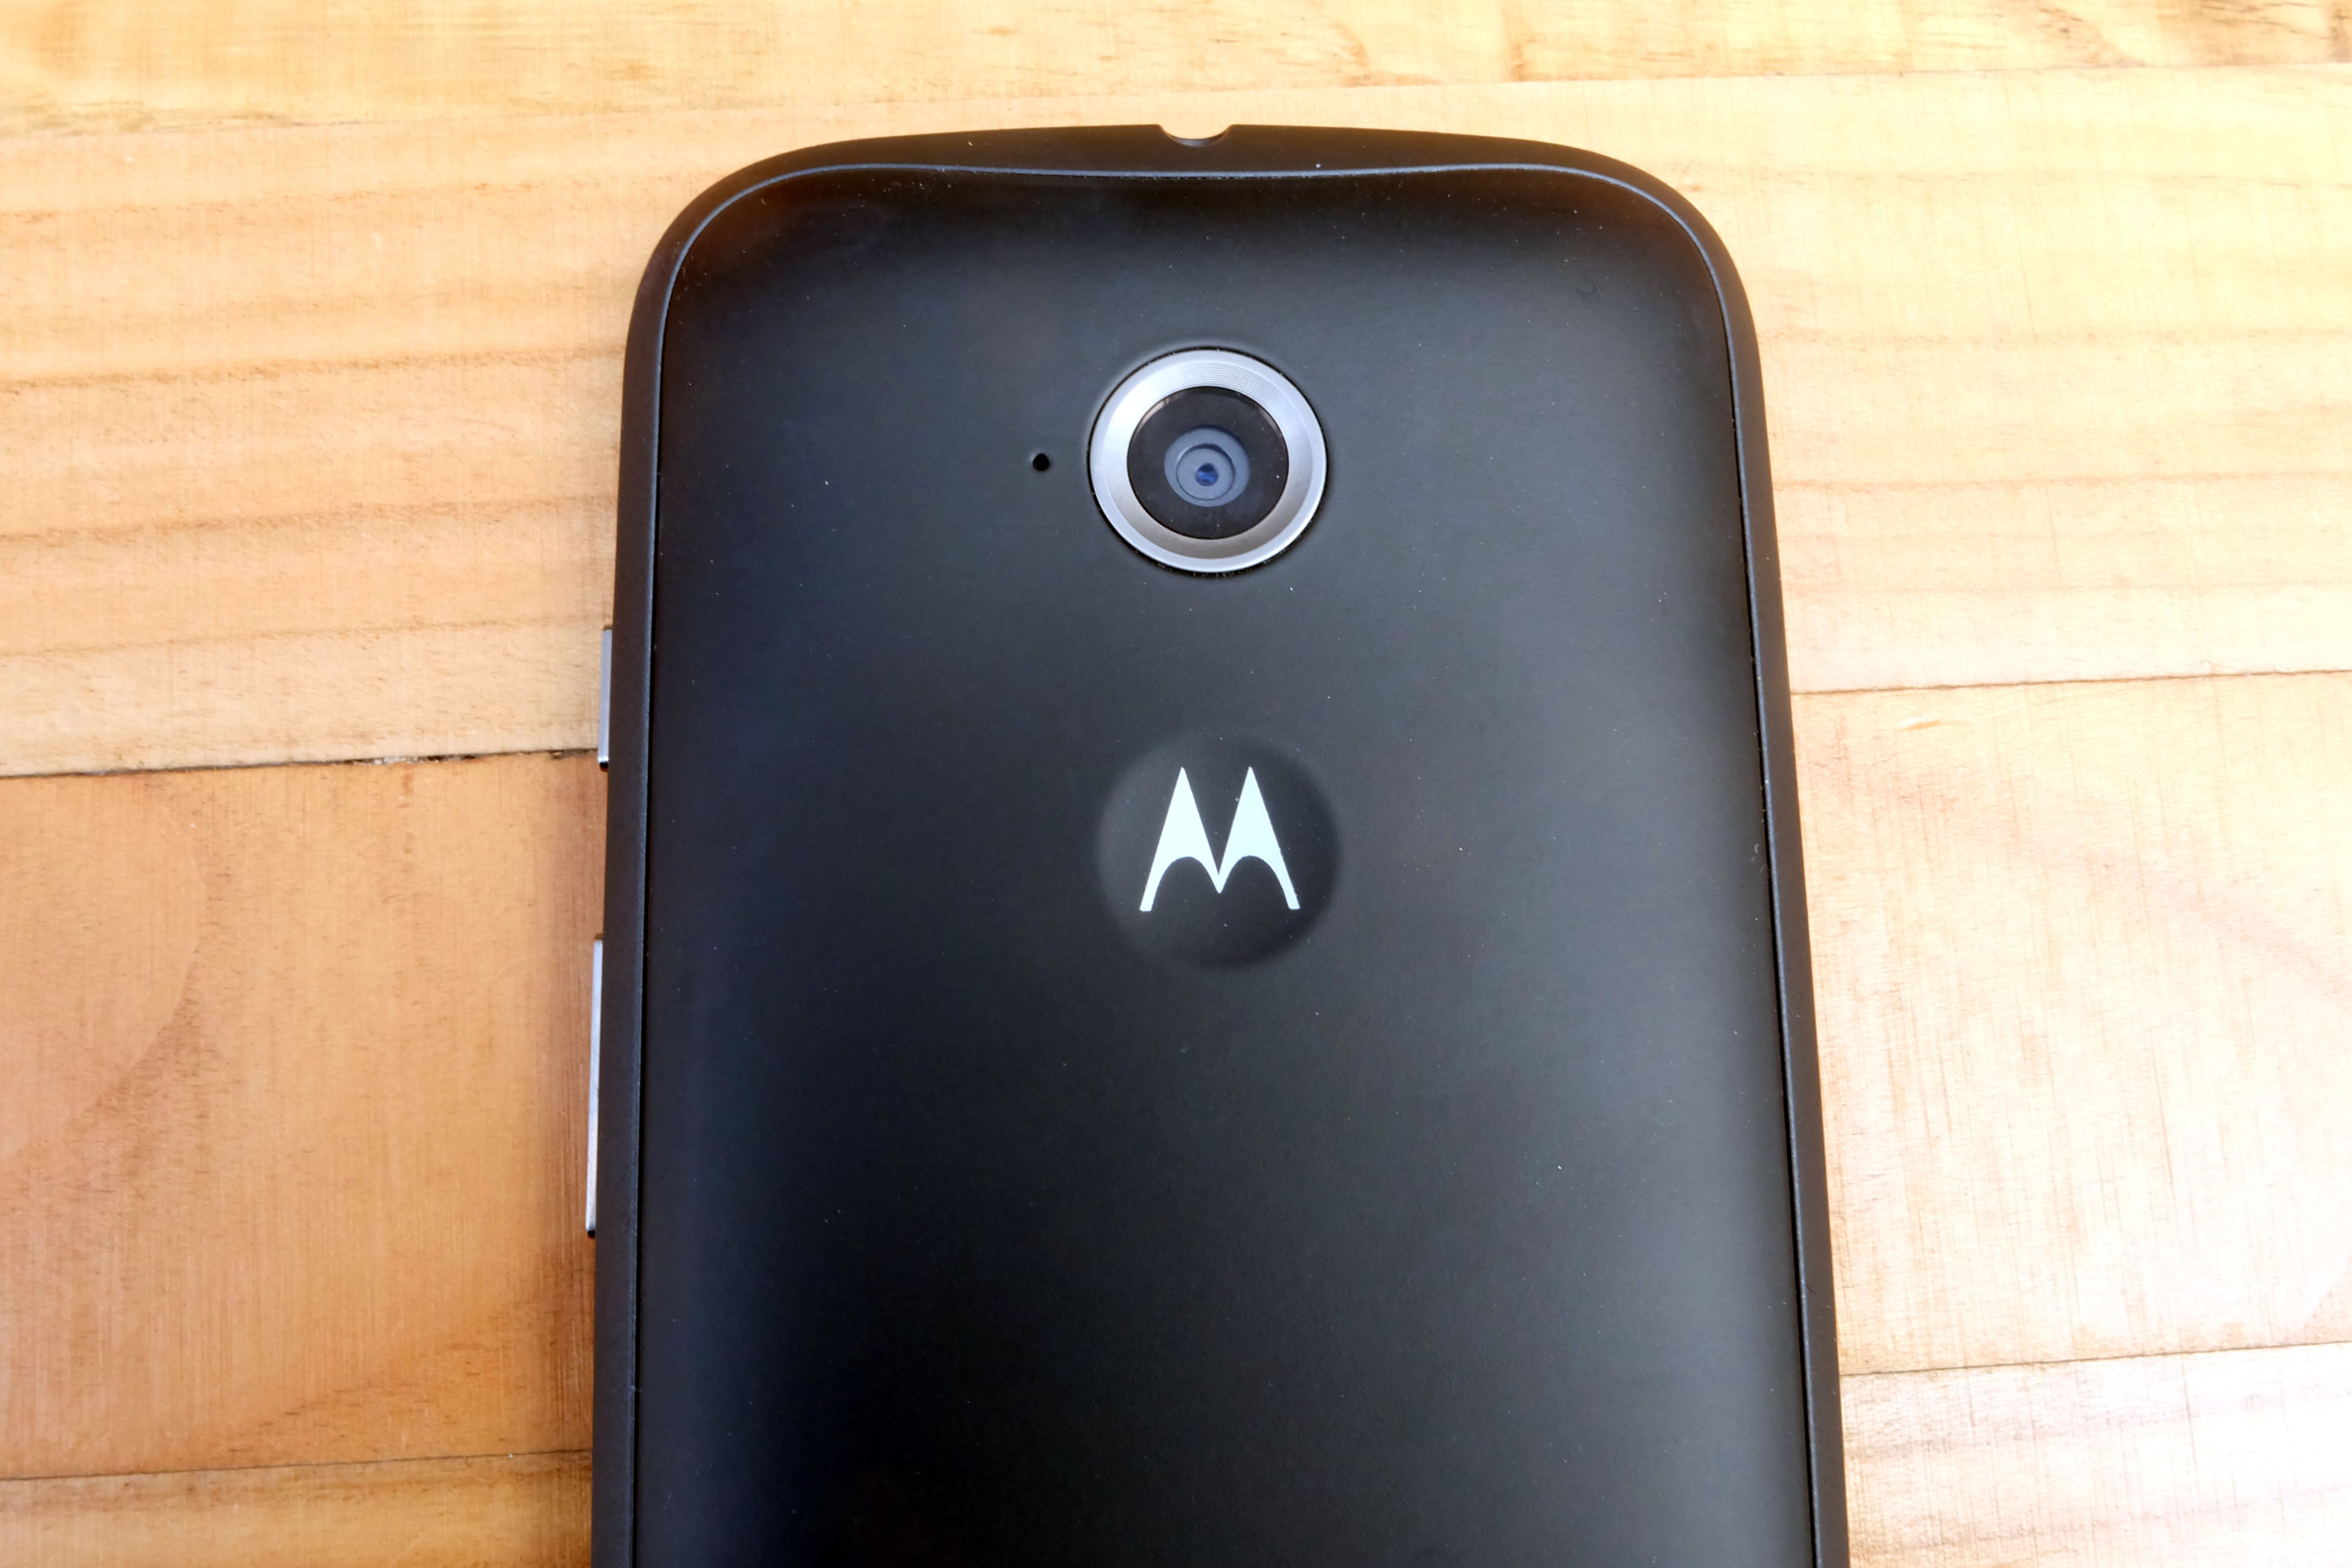 Phone Motorola Phone Android motorola moto e 2015 review ideal entry level 4g android youll find the volume rocker on right hand side of phone below power button theyre both raised enough to be distinct